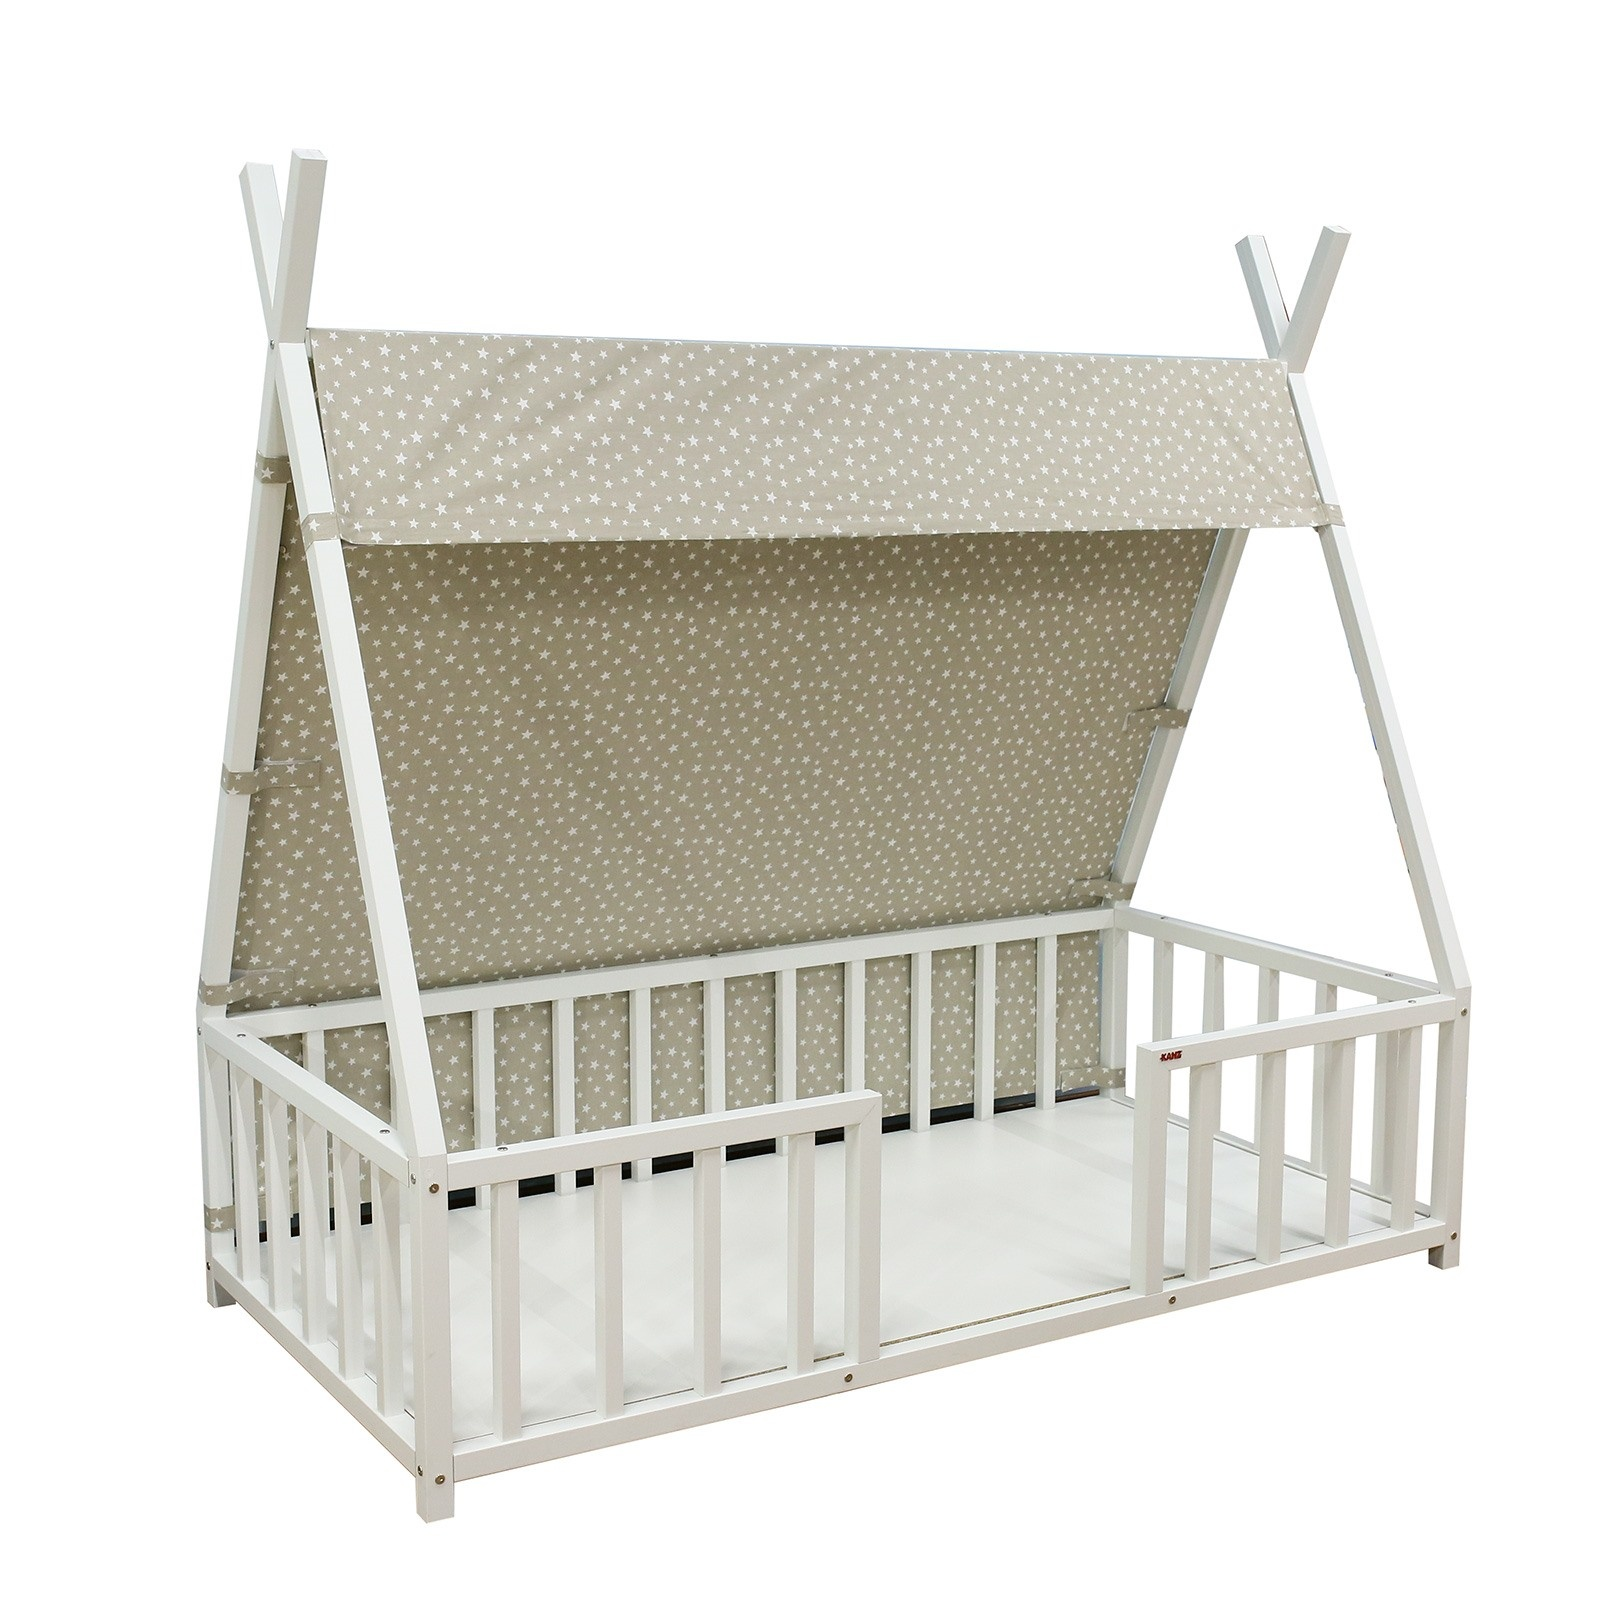 Ebebek Baby Plus Star Baby Crib Shade